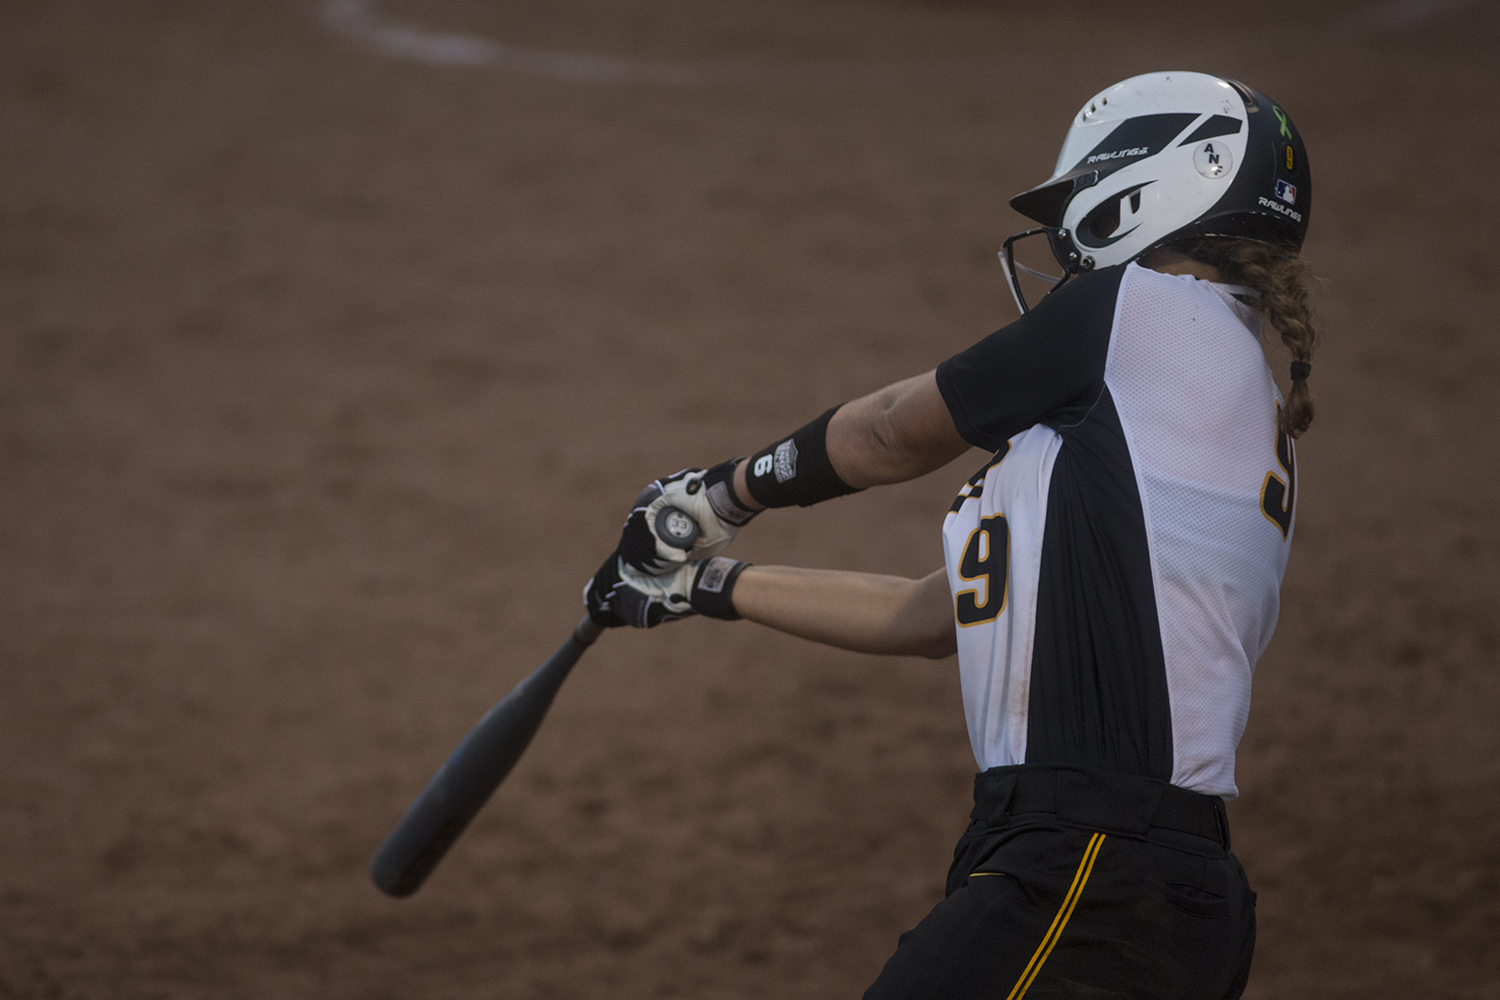 Freshman Abby Lien, utiliy and center, bats during the Iowa v Kirkwood softball game at the Pearl Softball Complex in Coralville on Sept 14, 2018. The Hawkeyes defeated the Kirkwood Eagles 10-6.